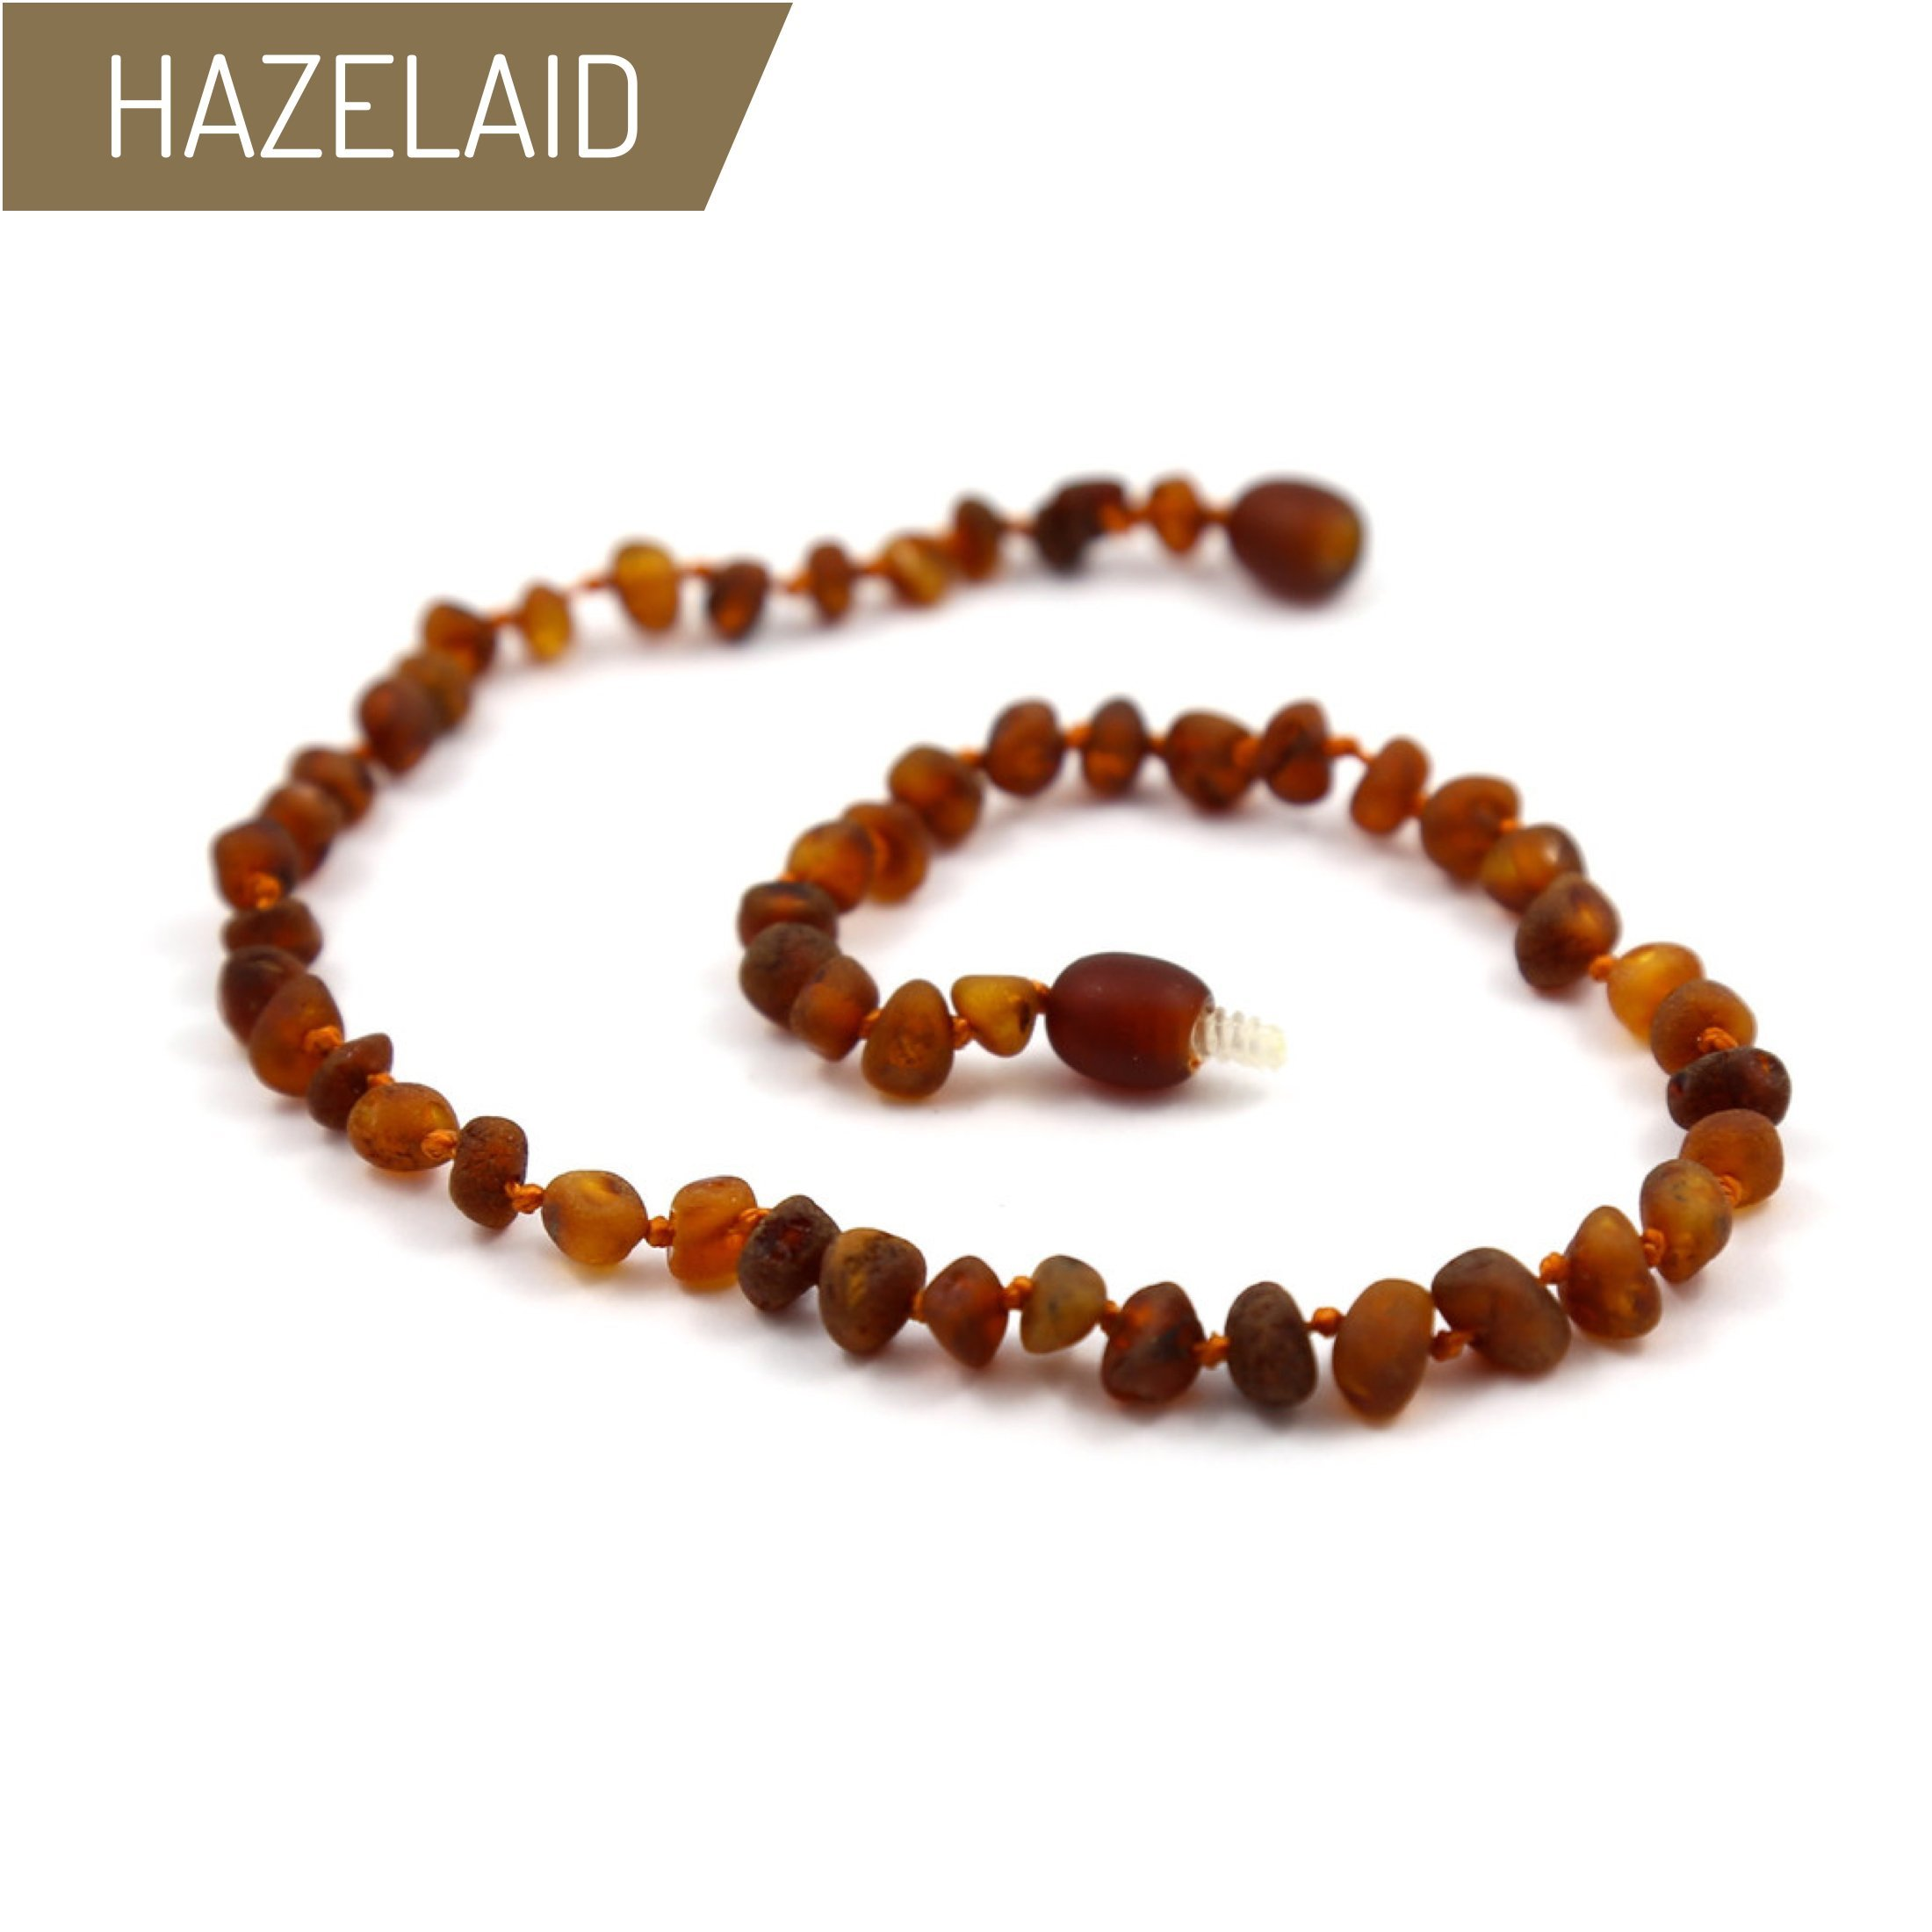 Hazelaid (TM) 14'' Baltic Amber Nutmeg Necklace